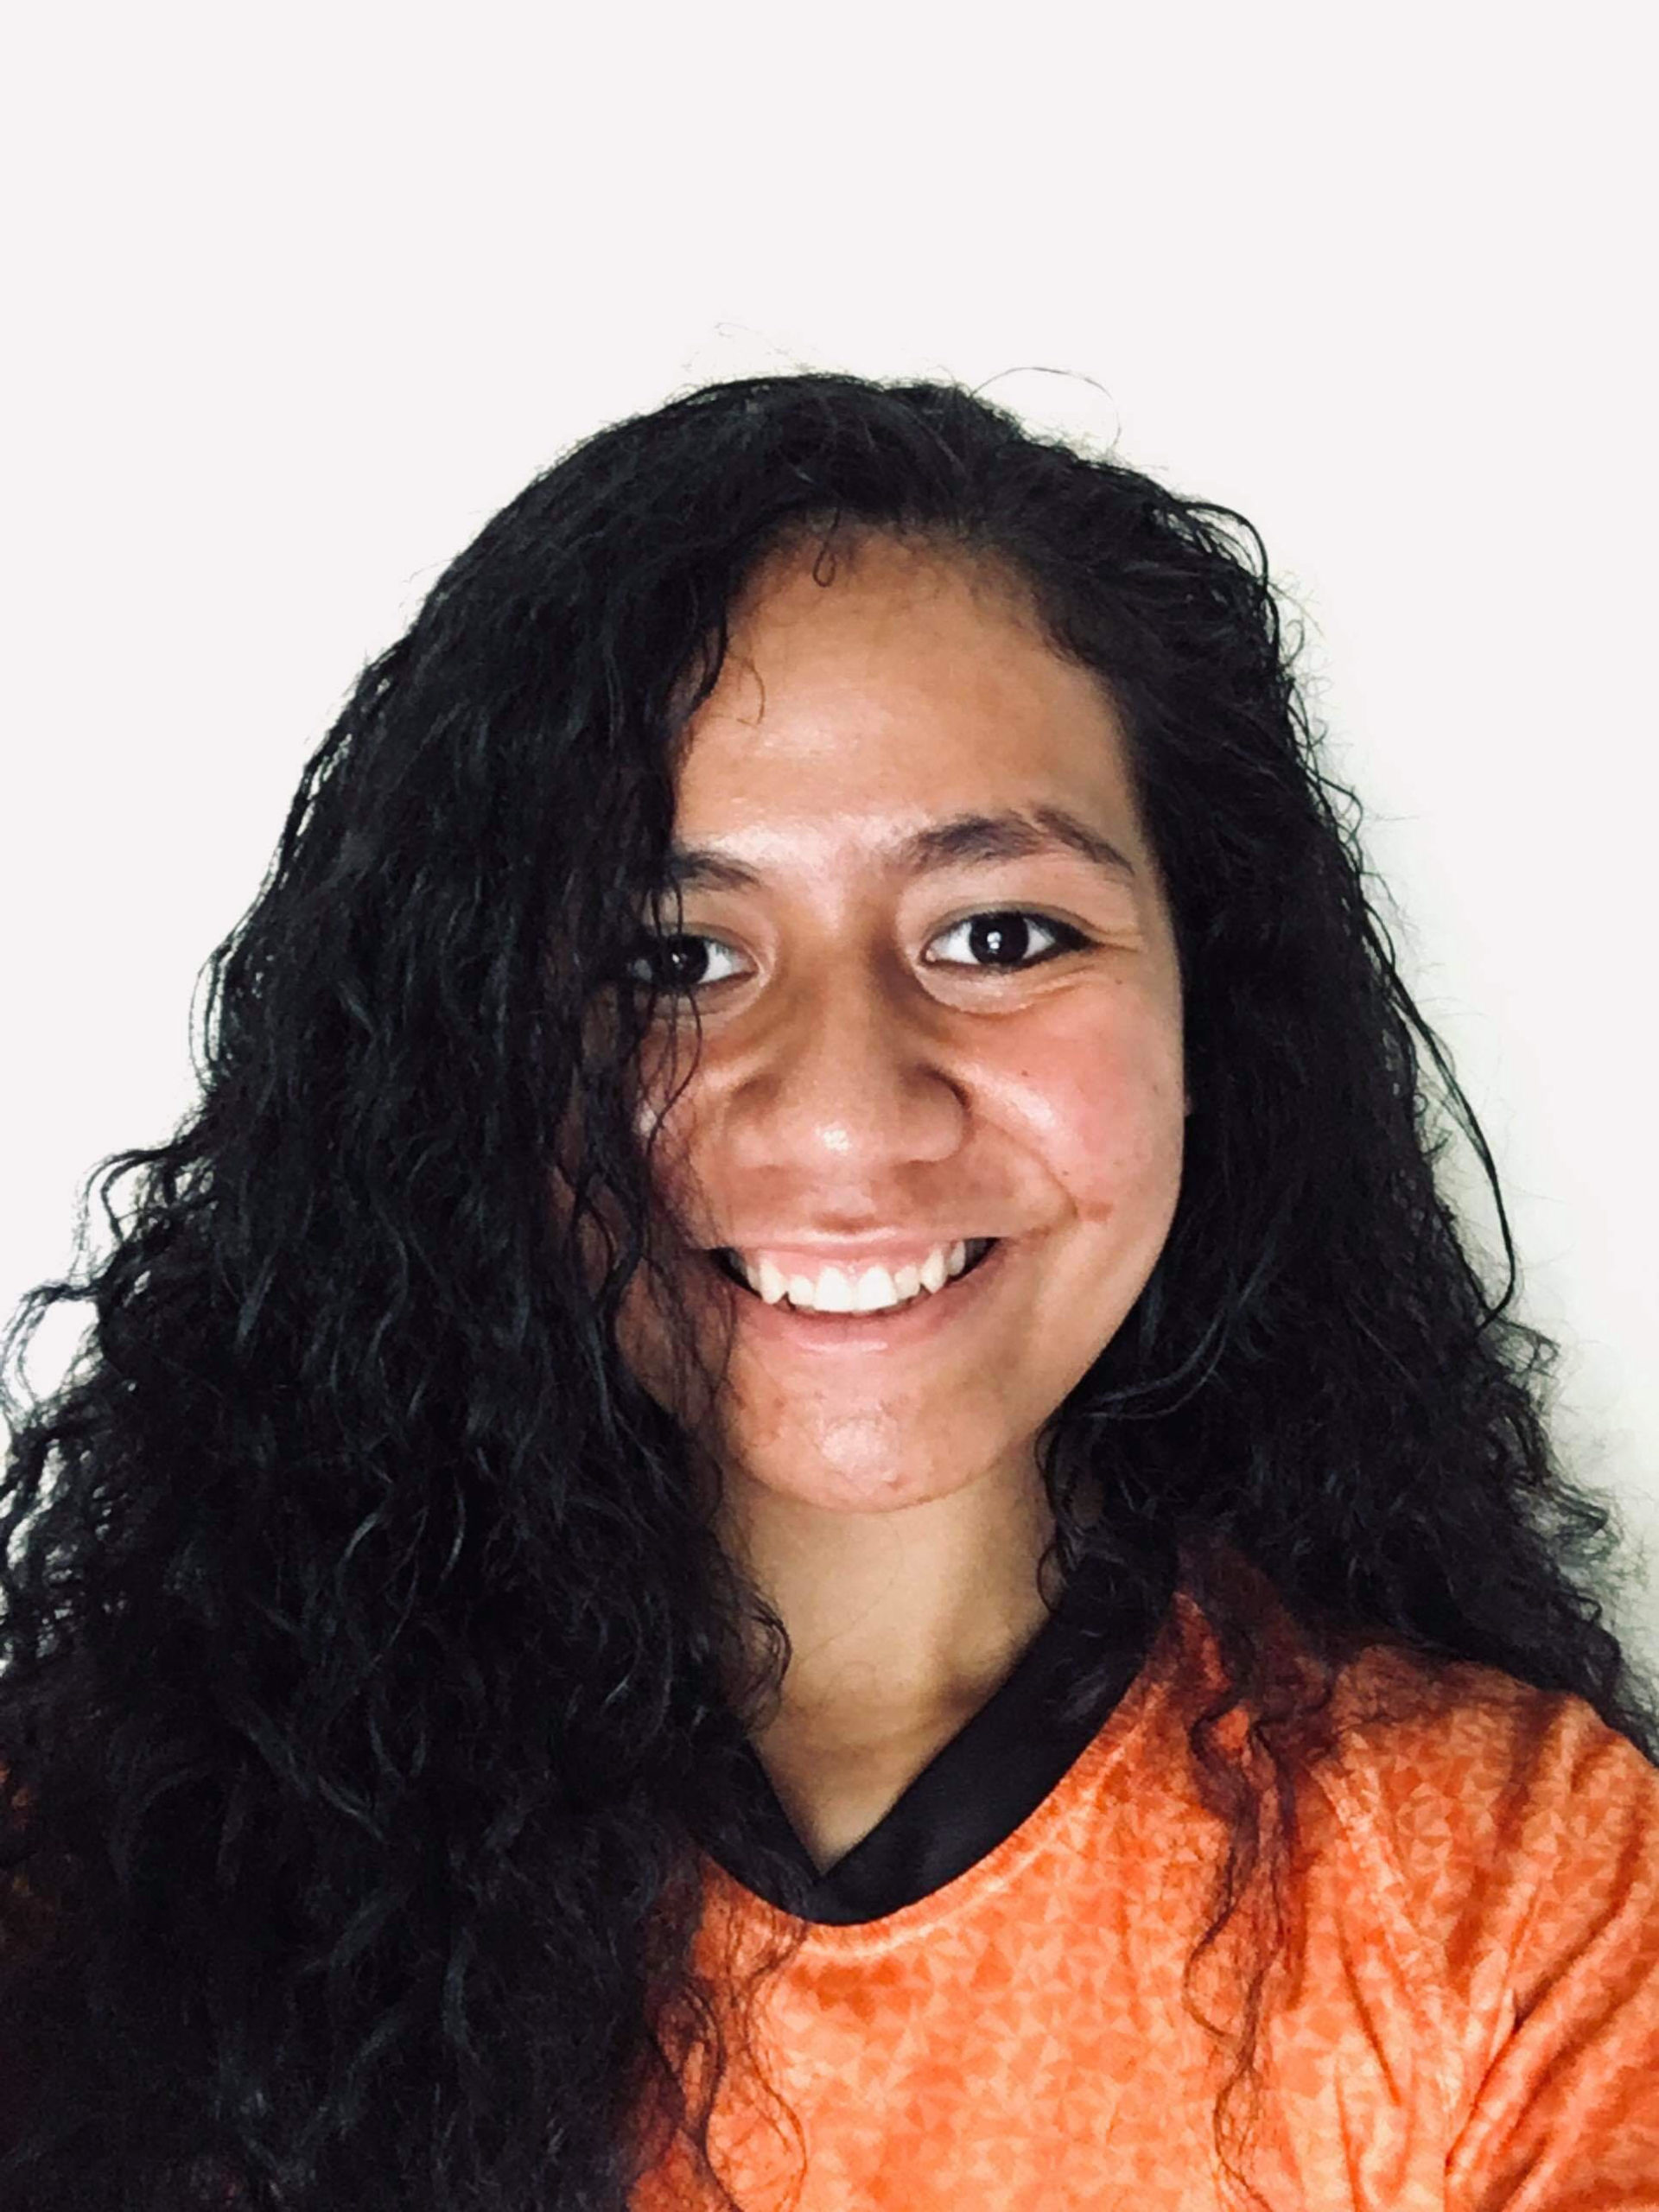 """Hevani Kaihau, 20, is receiving the David Williamson Referee Scholarship for 2020 to advance her skills and experience as an emerging rugby official. The scholarship fund was created in 2017 to recruit, train and coach young referees in honor of David """"Bunny"""" Williamson, a national panel referee and referee evaluator. The fund's goals include assuring that teams, from youth to senior sides, have quality match officials by building a pipeline that will impact the sport for years to come. Will Nelson, 22, who just graduated from Santa Clara University, is also receiving a Williamson scholarship this summer. Kaihau comes from a rugby family. Her father, Bo, had a lengthy career as a player, including co-founding the Sacramento Lions. Hevani and her sister were high school teammates on the Land Park Harlequins. Bo Kaihau went on to be a match official and continues to coach. Kaihau has been taking classes at Sacramento City College and plans to transfer to a four year university. For now, she hopes to both referee and continuing playing. She would like to be a professional in one or both roles. """"My Dad gives me tips on refereeing and explaining the game,"""" says Kaihau. """"I am beyond grateful to receive the scholarship."""" The Northern California Rugby Referee Society oversees the Williamson Scholarship. The eight member scholarship committee includes, Helen Marcus, Jennifer Tetler, Phil Ackroyd, Bryant Byrnes, Matt Eason, Neil MacDonald, Peter Sandhill and Hosley Past recipients include Andrew Stockton, Matt Mulholland and Drew Arballo, all of whom are officiating at the college D1-A elite level. Each spent a summertime exchange in Alberta, Canada. """"Hevani first came to my attention when I was coordinating referee coaches for the Sacramento Kick Off Tournament in 2018,"""" says scholarship committee chair David Hosley. """"Already a very good player, she wanted to try being a touch judge. By summer she was refing sevens and has improved very quickly with support from our referee """